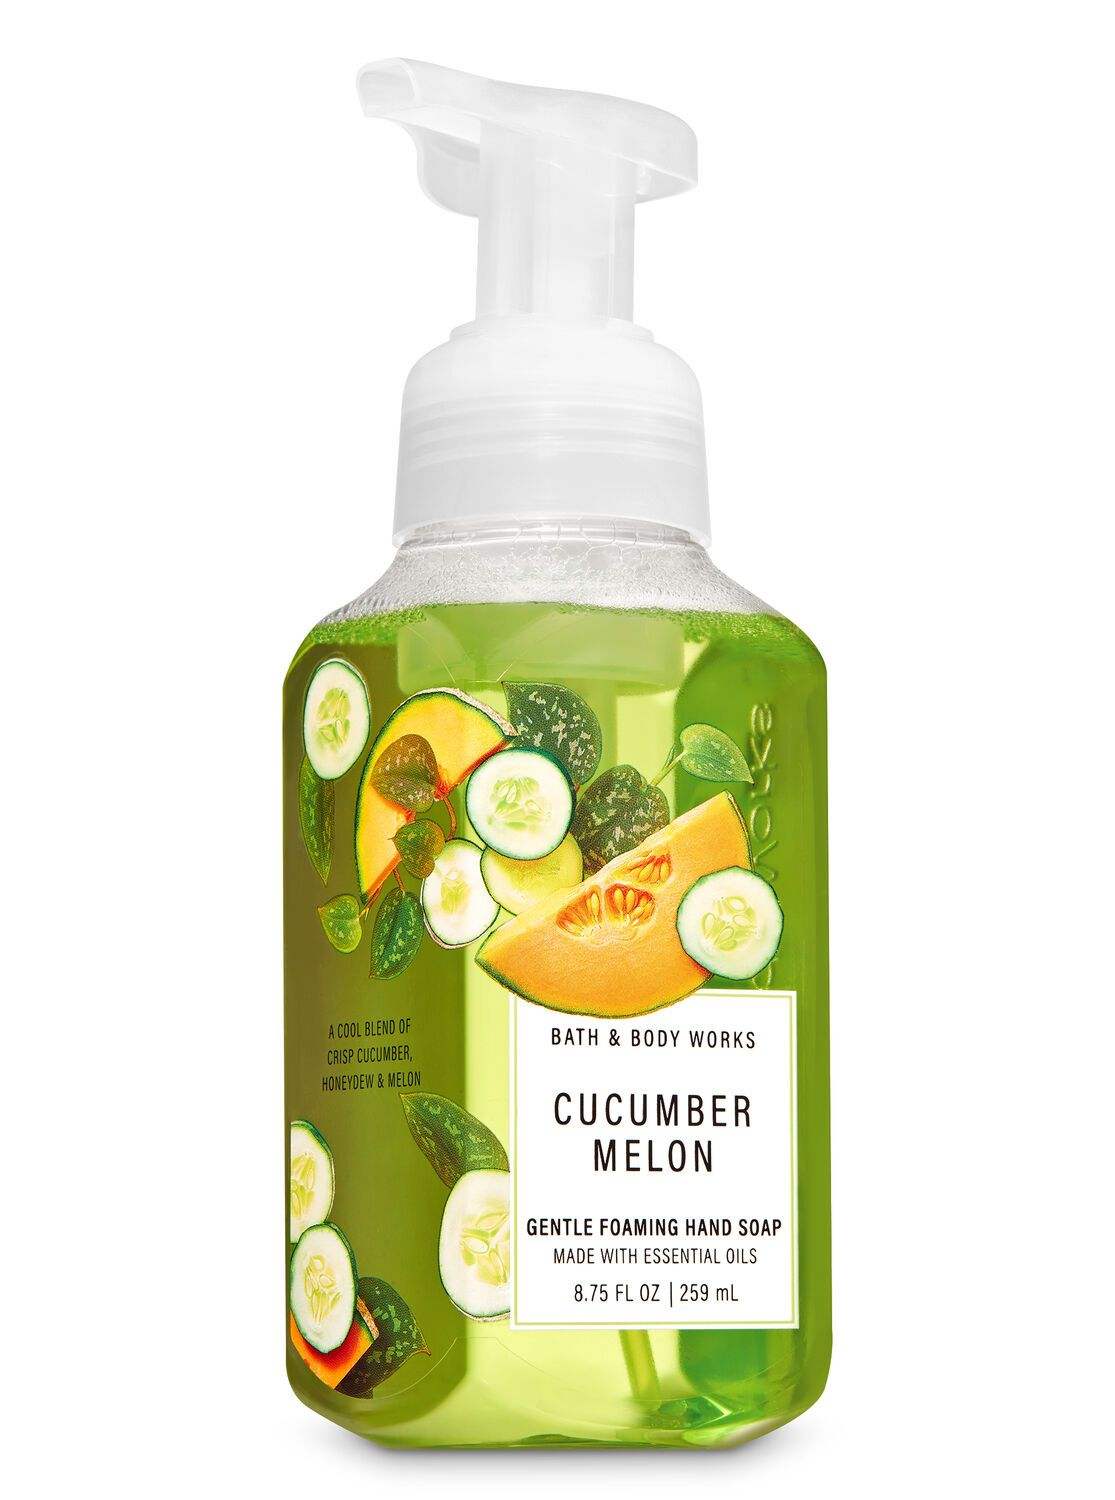 Bath Body Works Cucumber Melon Gentle Foaming Hand Soap In 2020